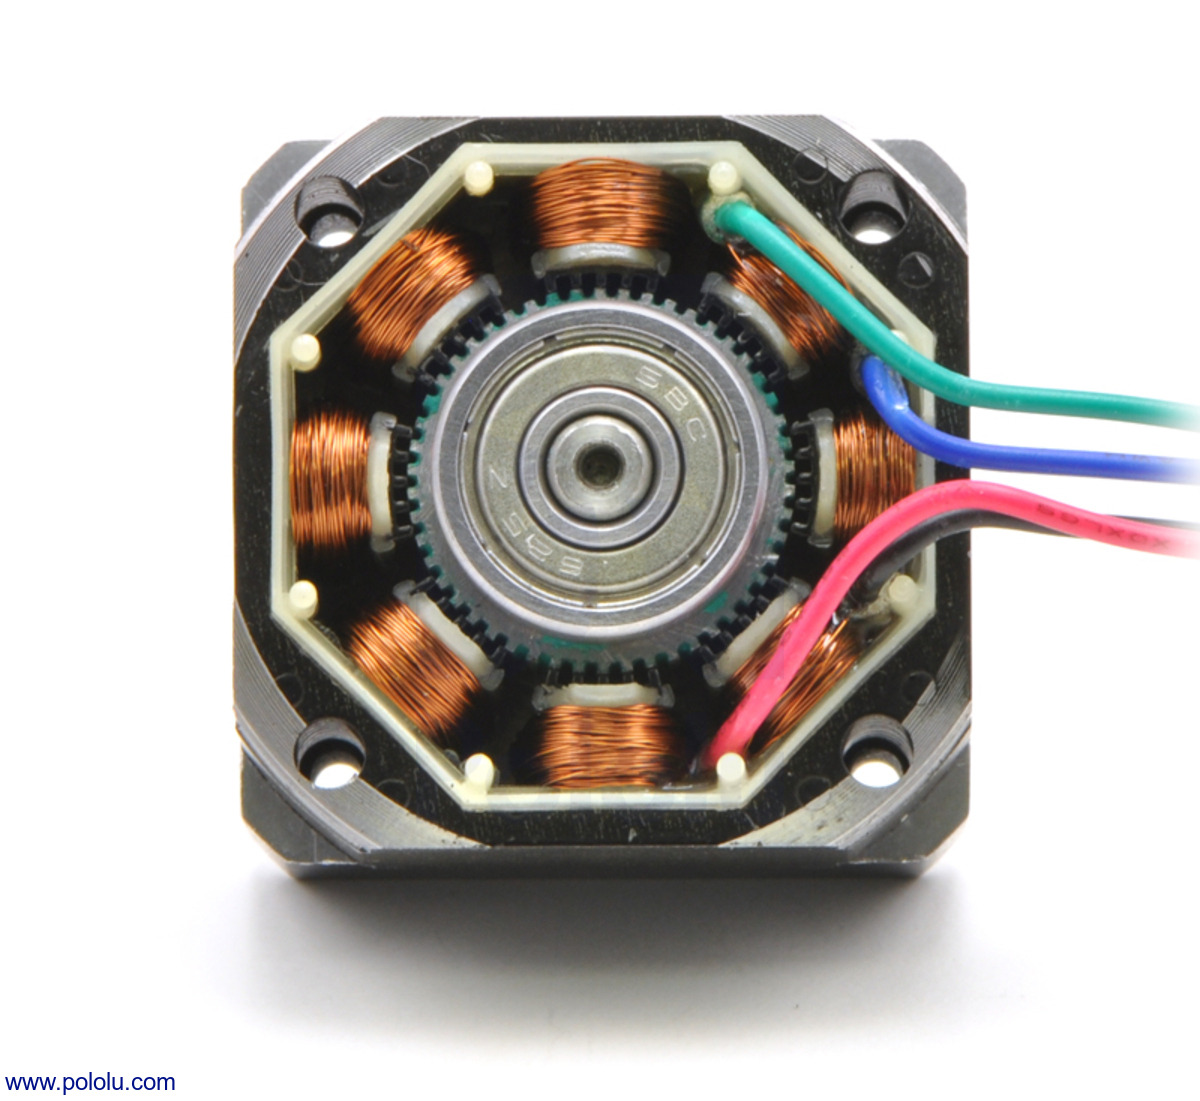 Pololu Stepper Motor Bipolar 200 Steps Rev 5776mm 32v 28 A 12 Lead 3 Phase Wiring Diagram On Ev Ac The Inside Of